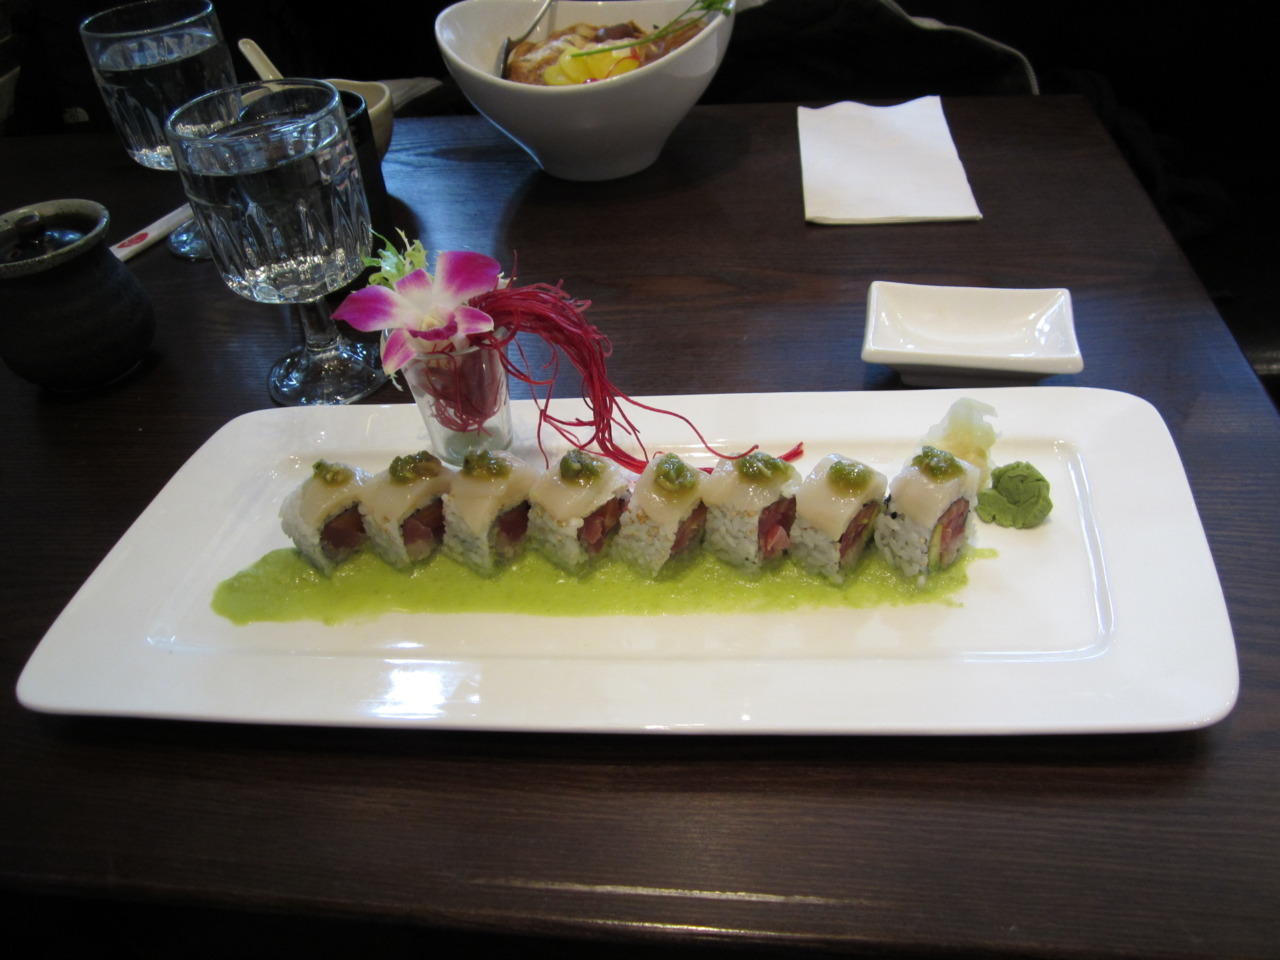 The 'awesome' sushi dish at Osaka.